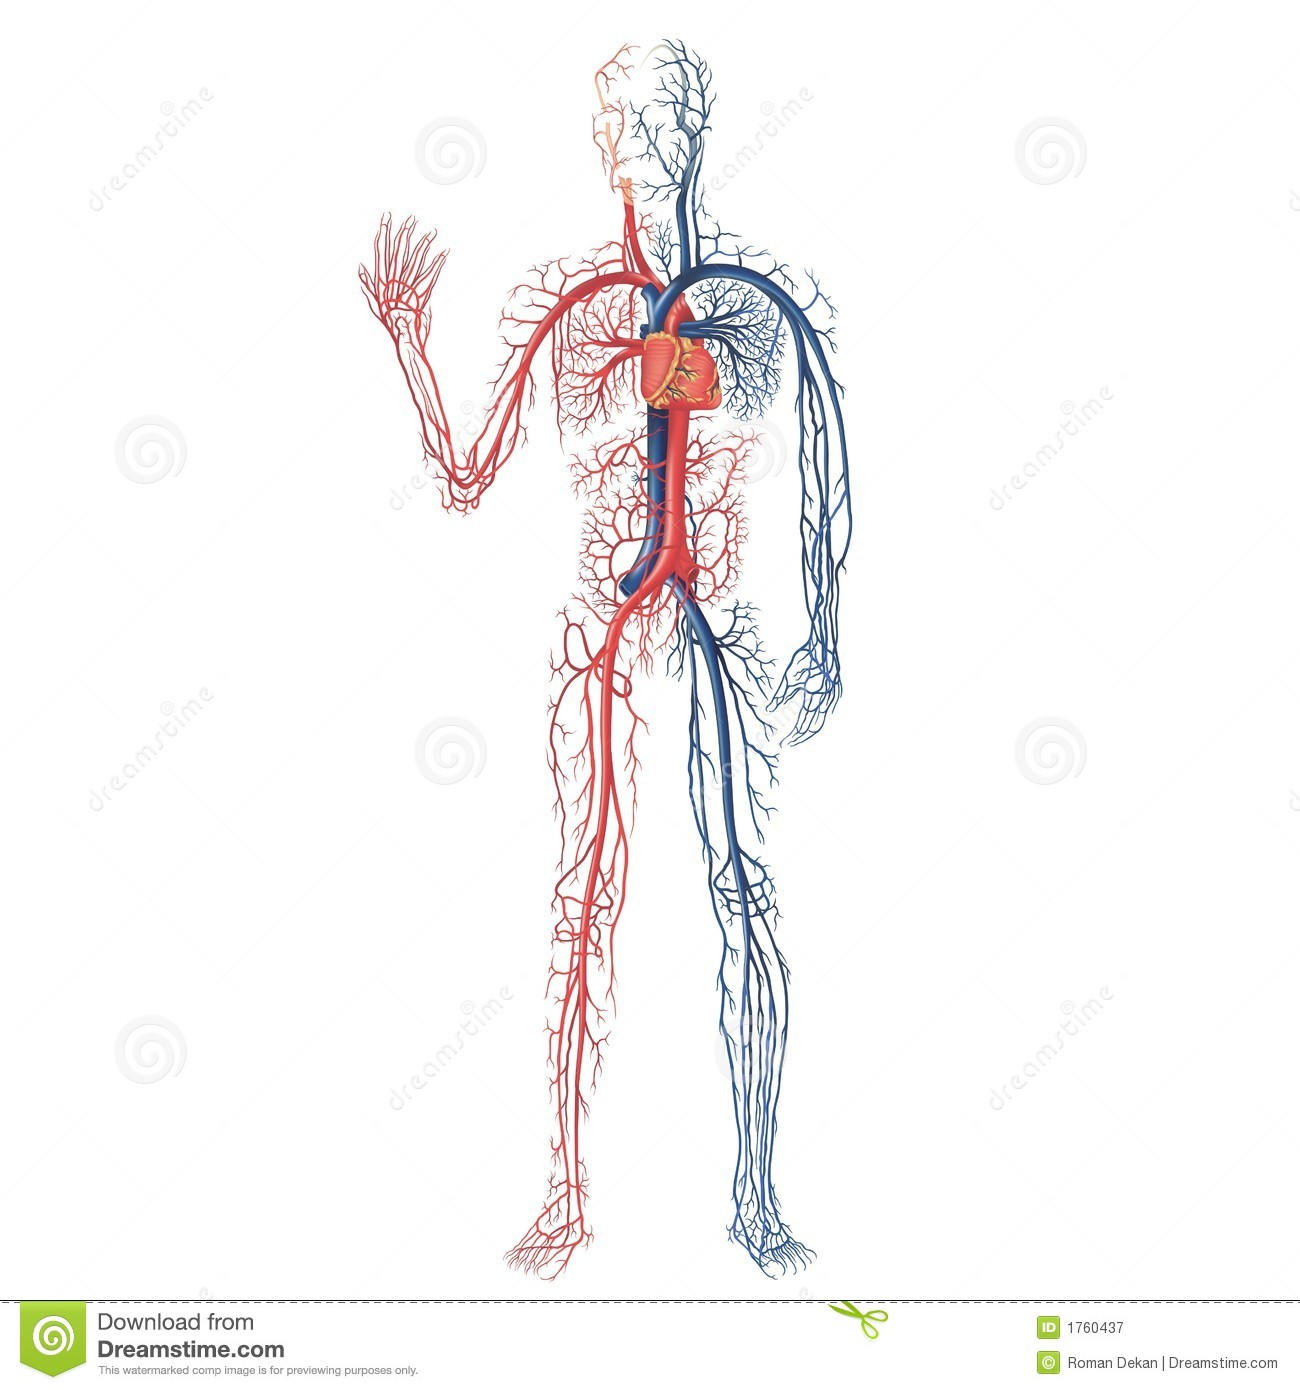 Vascular system royalty free stock photography image for Antropometria humana